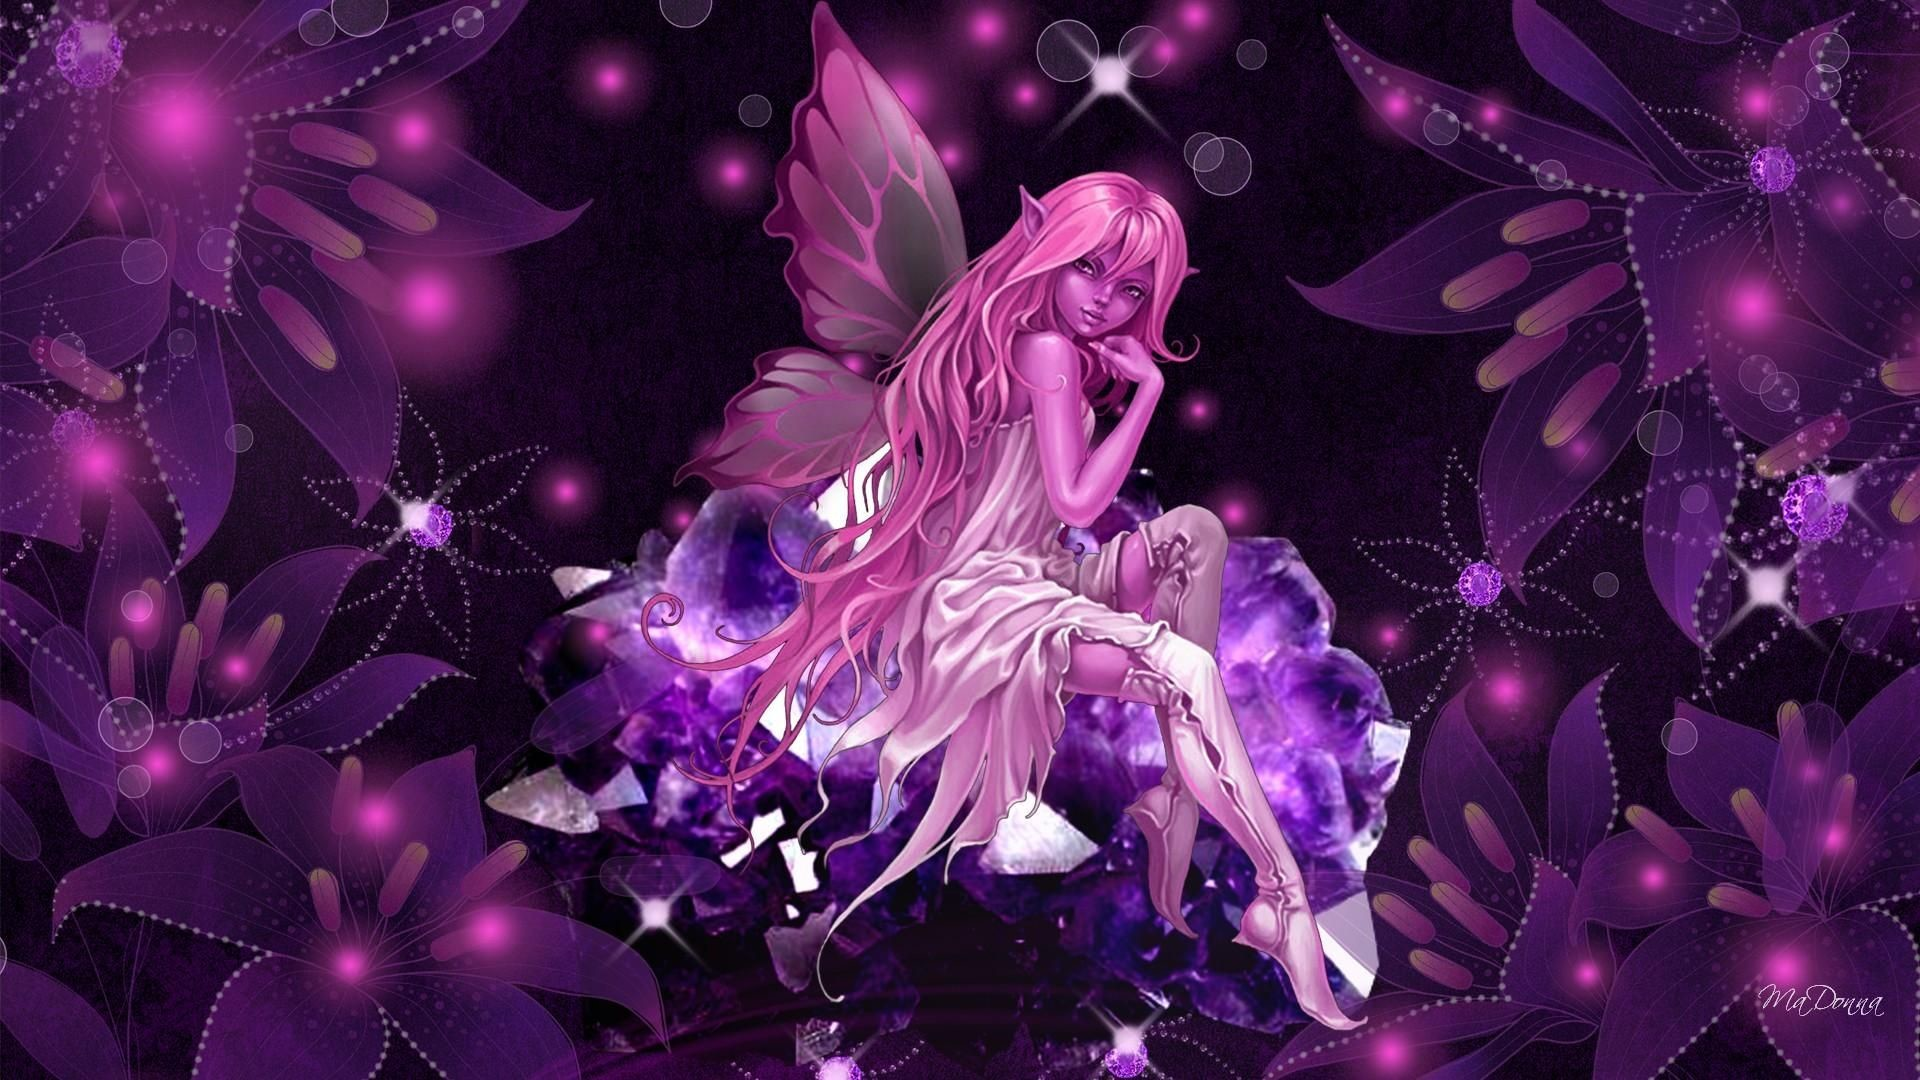 Res: 1920x1080, Butterfly Fairy Wallpaper | HD Pink Crystal Fairy Wallpaper